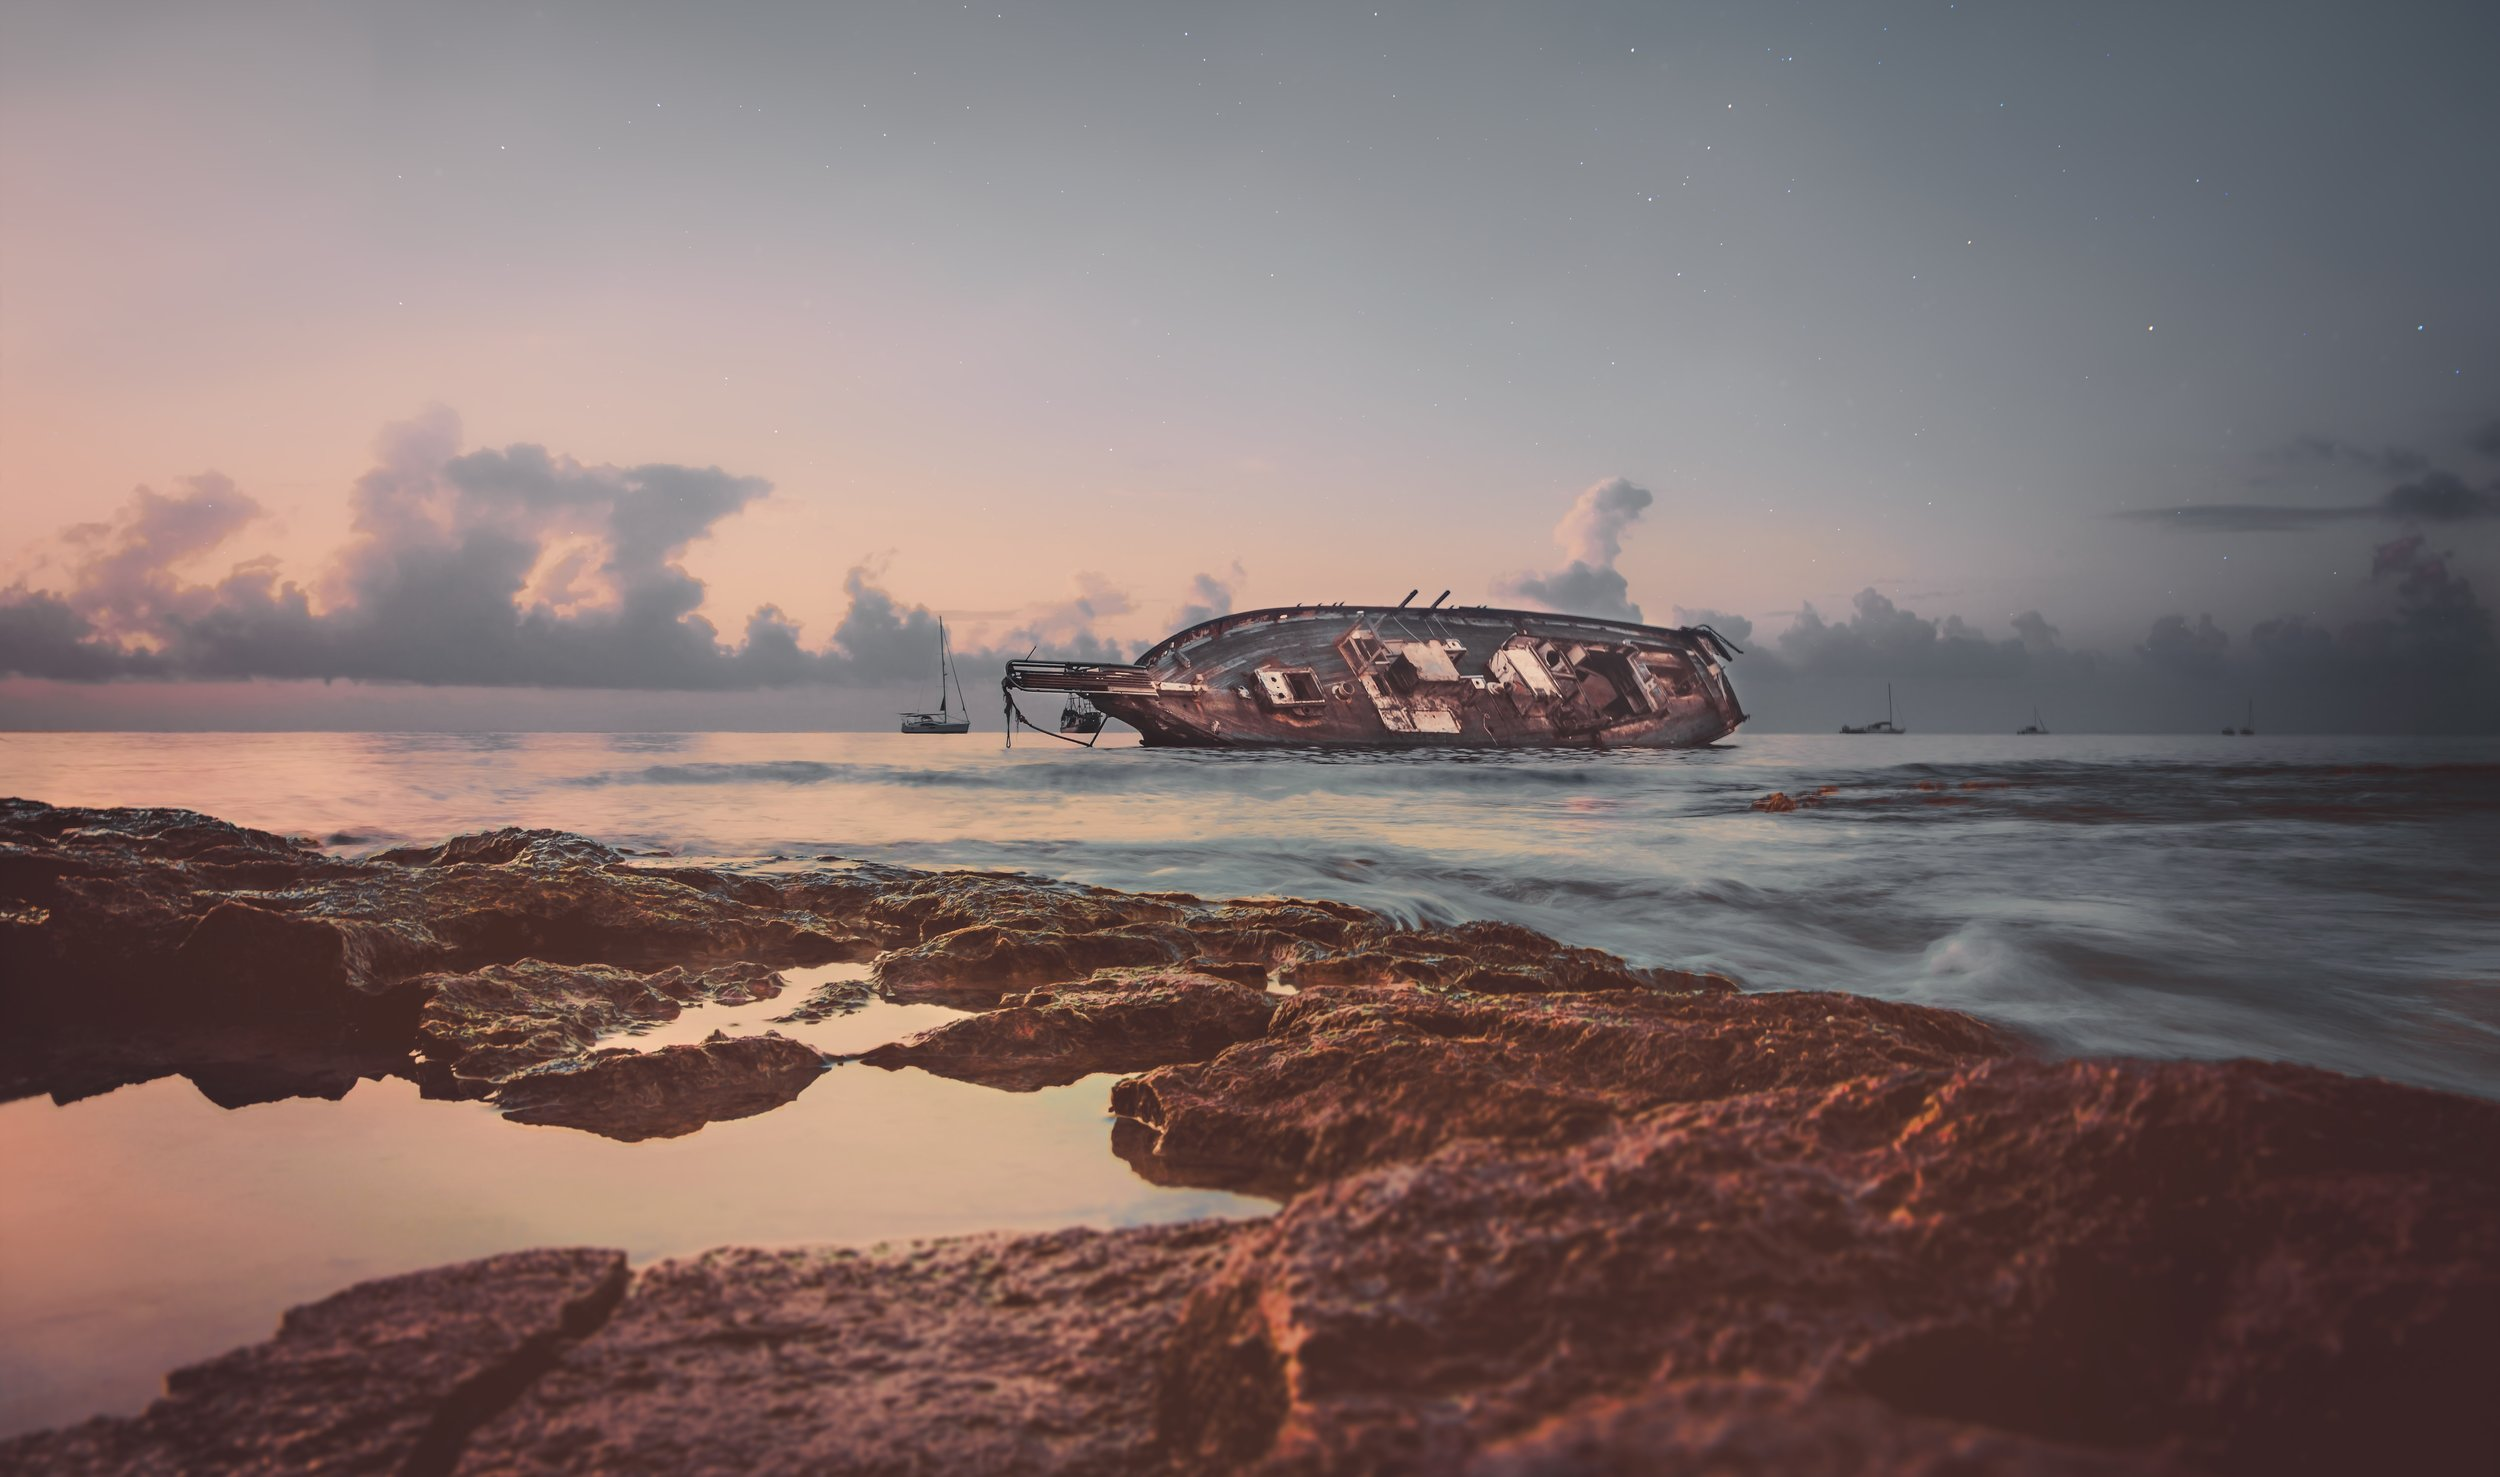 The Rusty Ruins - of the SS Dominator